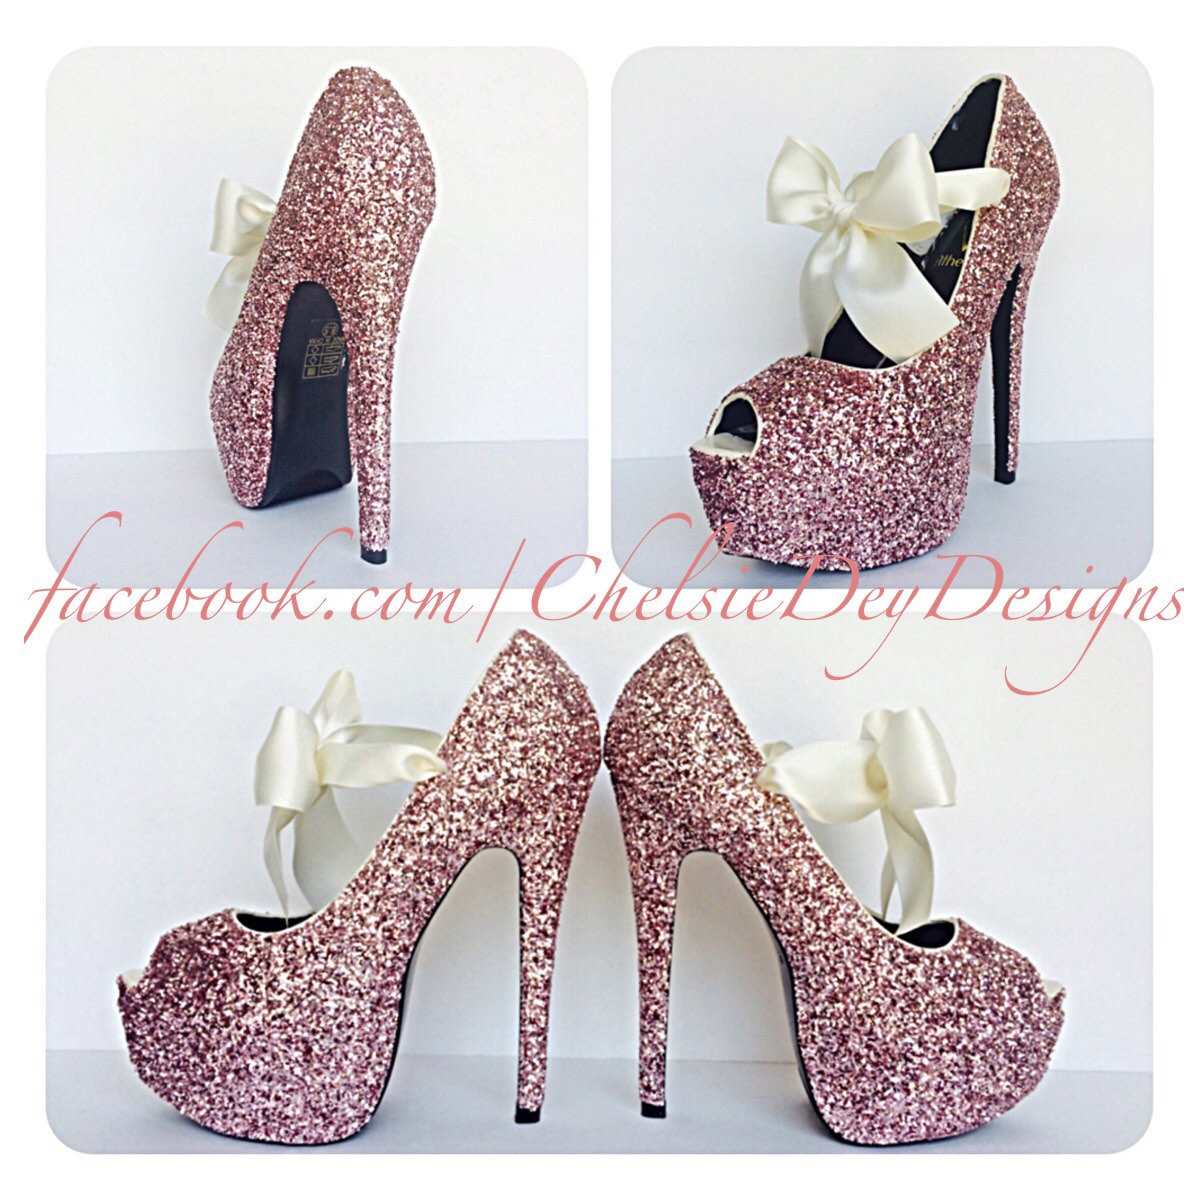 fc47b1e1f3c5 Glitter High Heels - Light Baby Pink - Open Peep Toe Pump - Platform ...